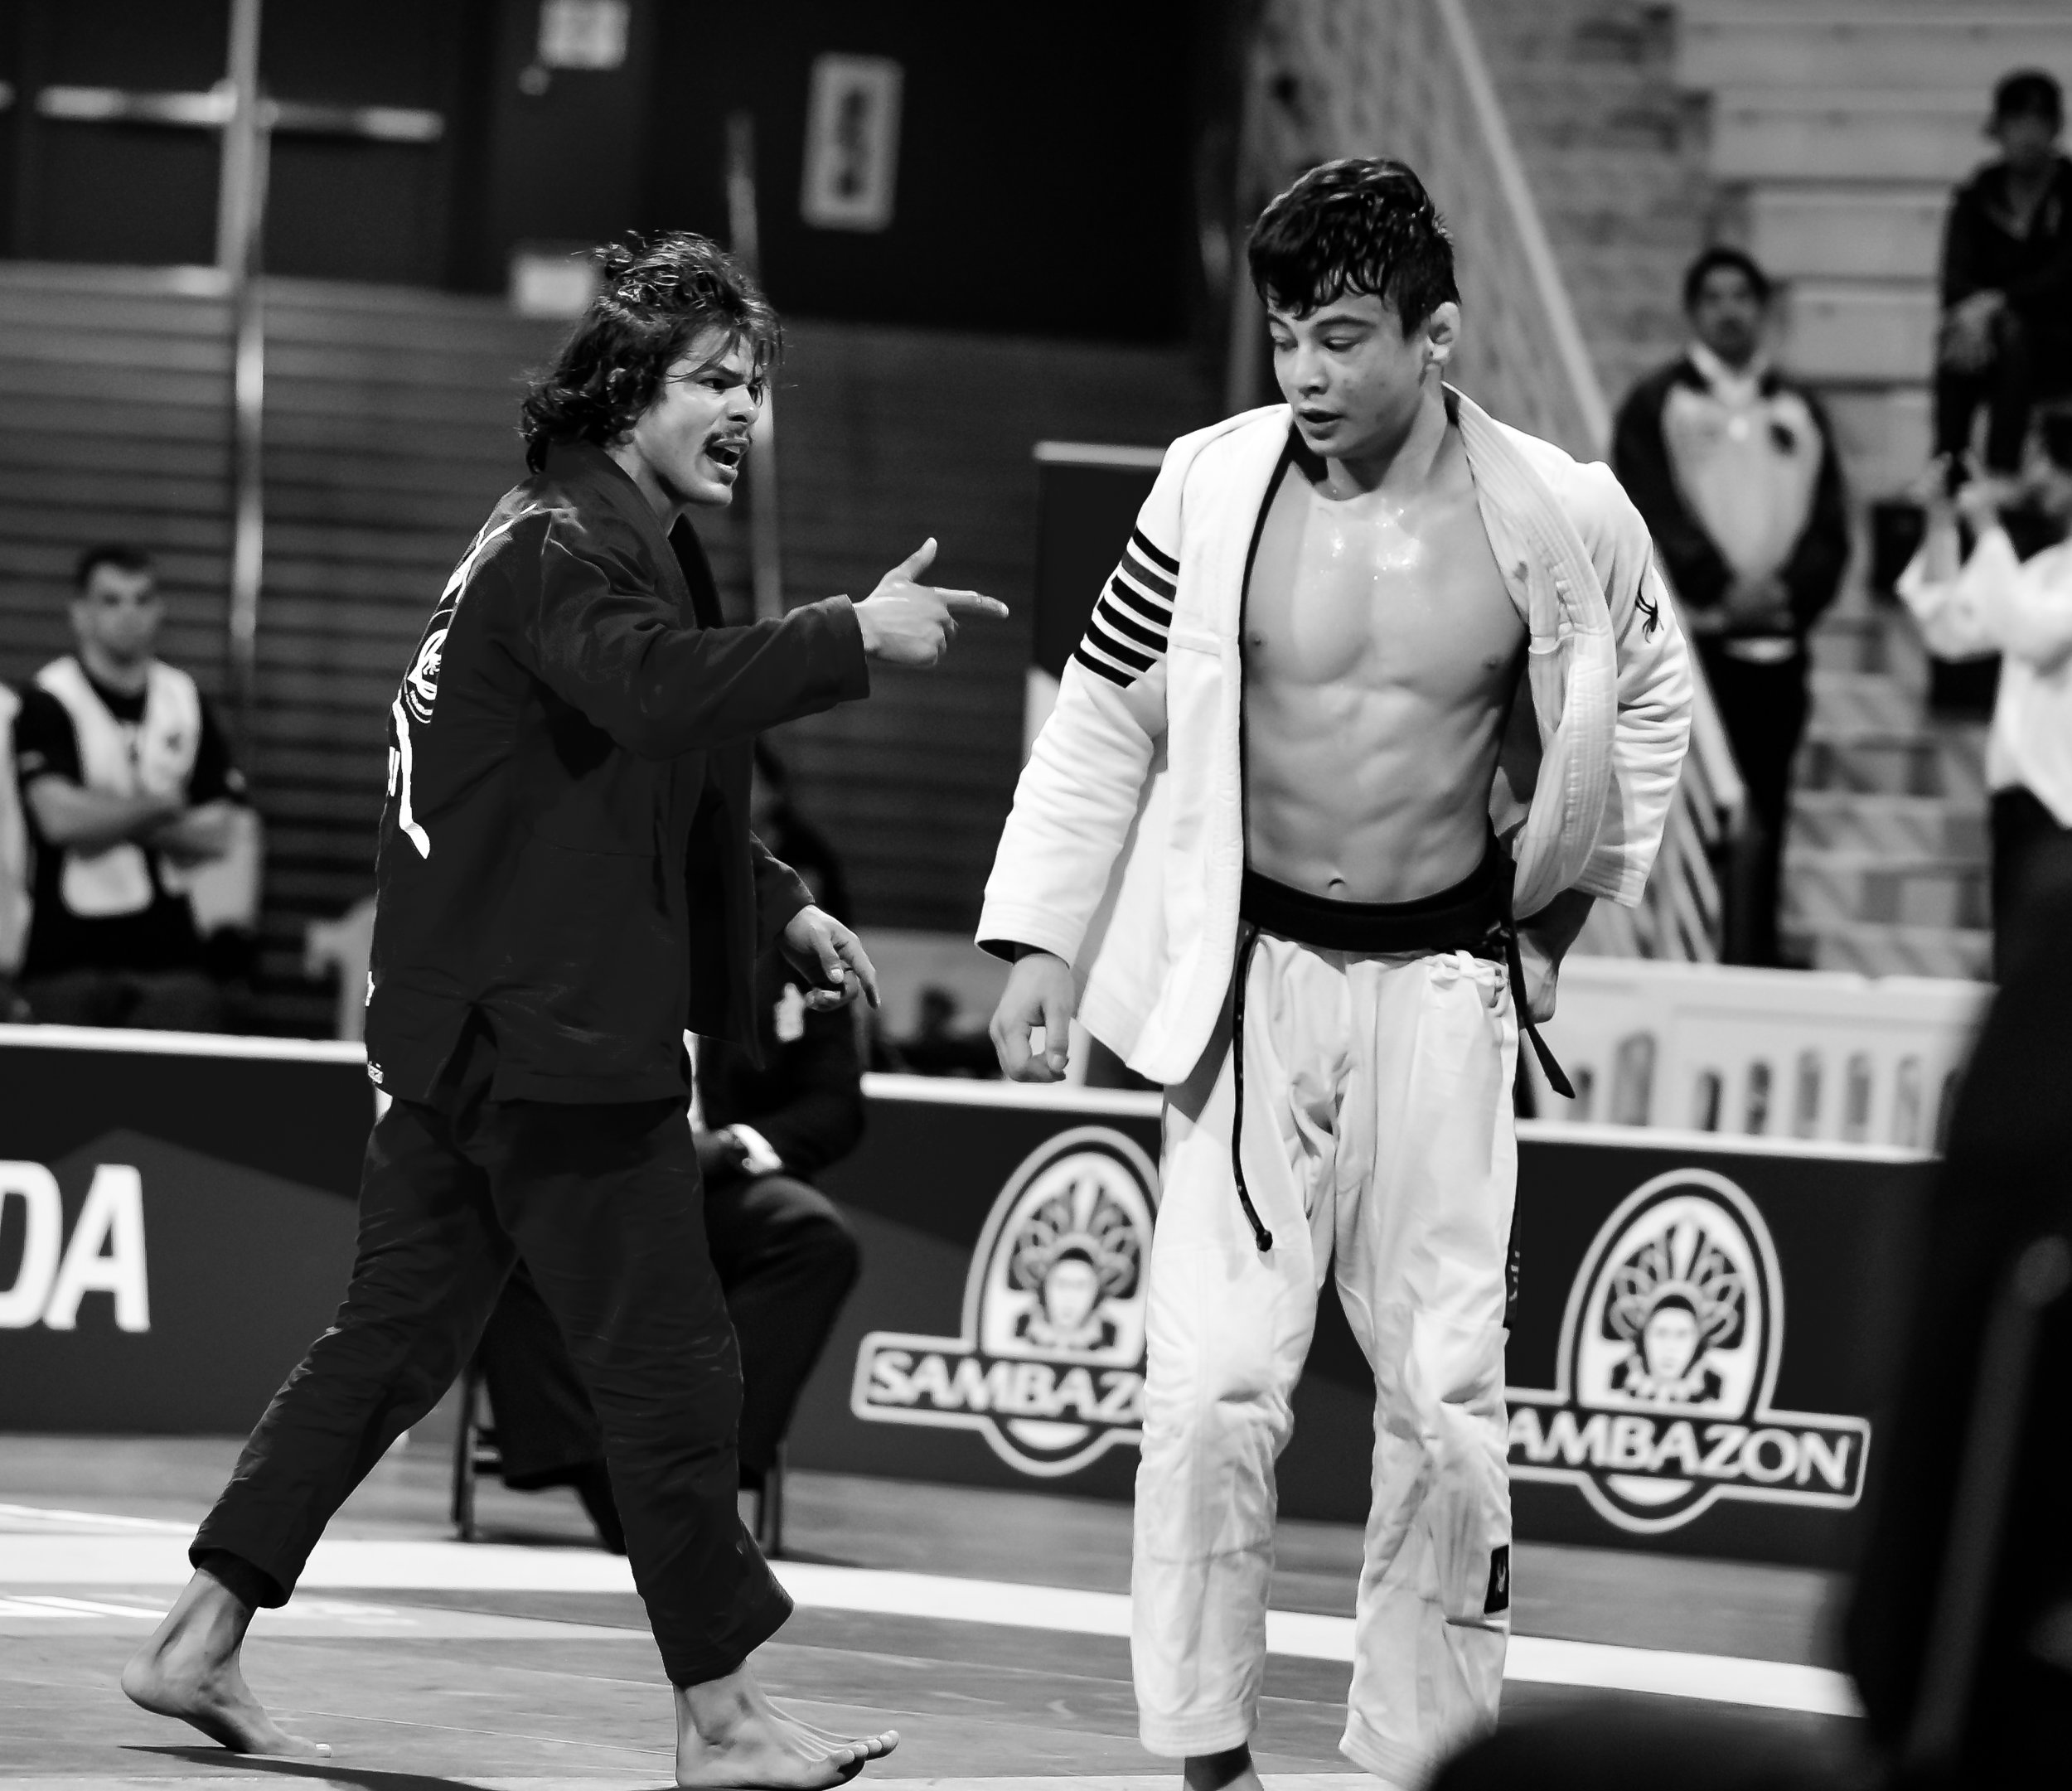 Ary Farias and João Miyao had an exciting Semi Finals match where both athletes left it all on the mat. Ary would win this one and move on to face American Mikey Musumeci in the Light Feather Division.